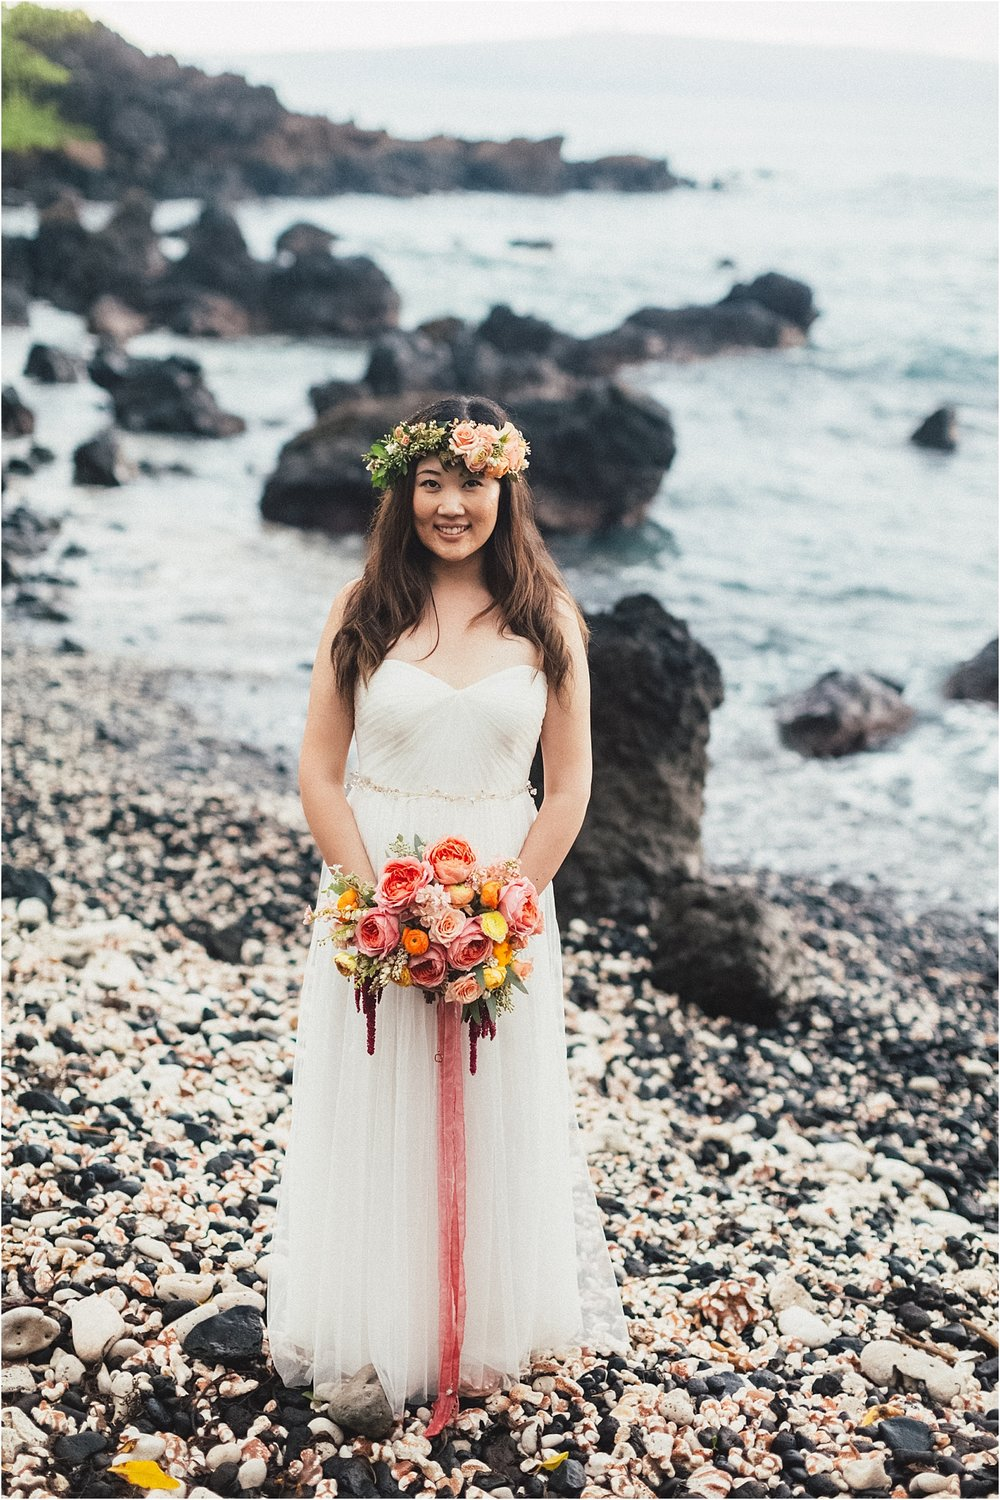 angie-diaz-photography-maui-destination-wedding-kukahiko-estate_0051.jpg